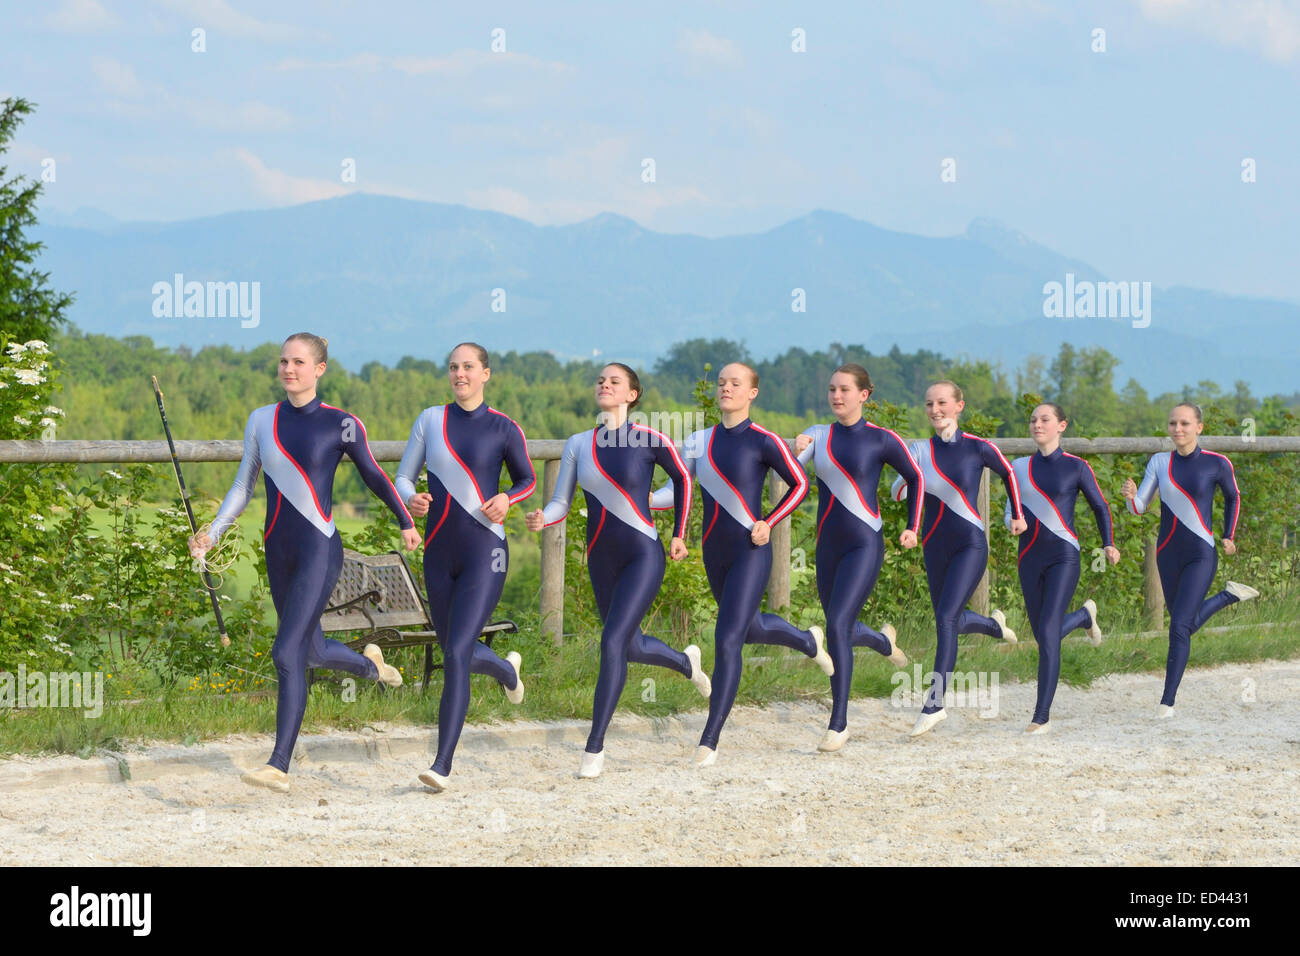 Vaulting team coming in - Stock Image